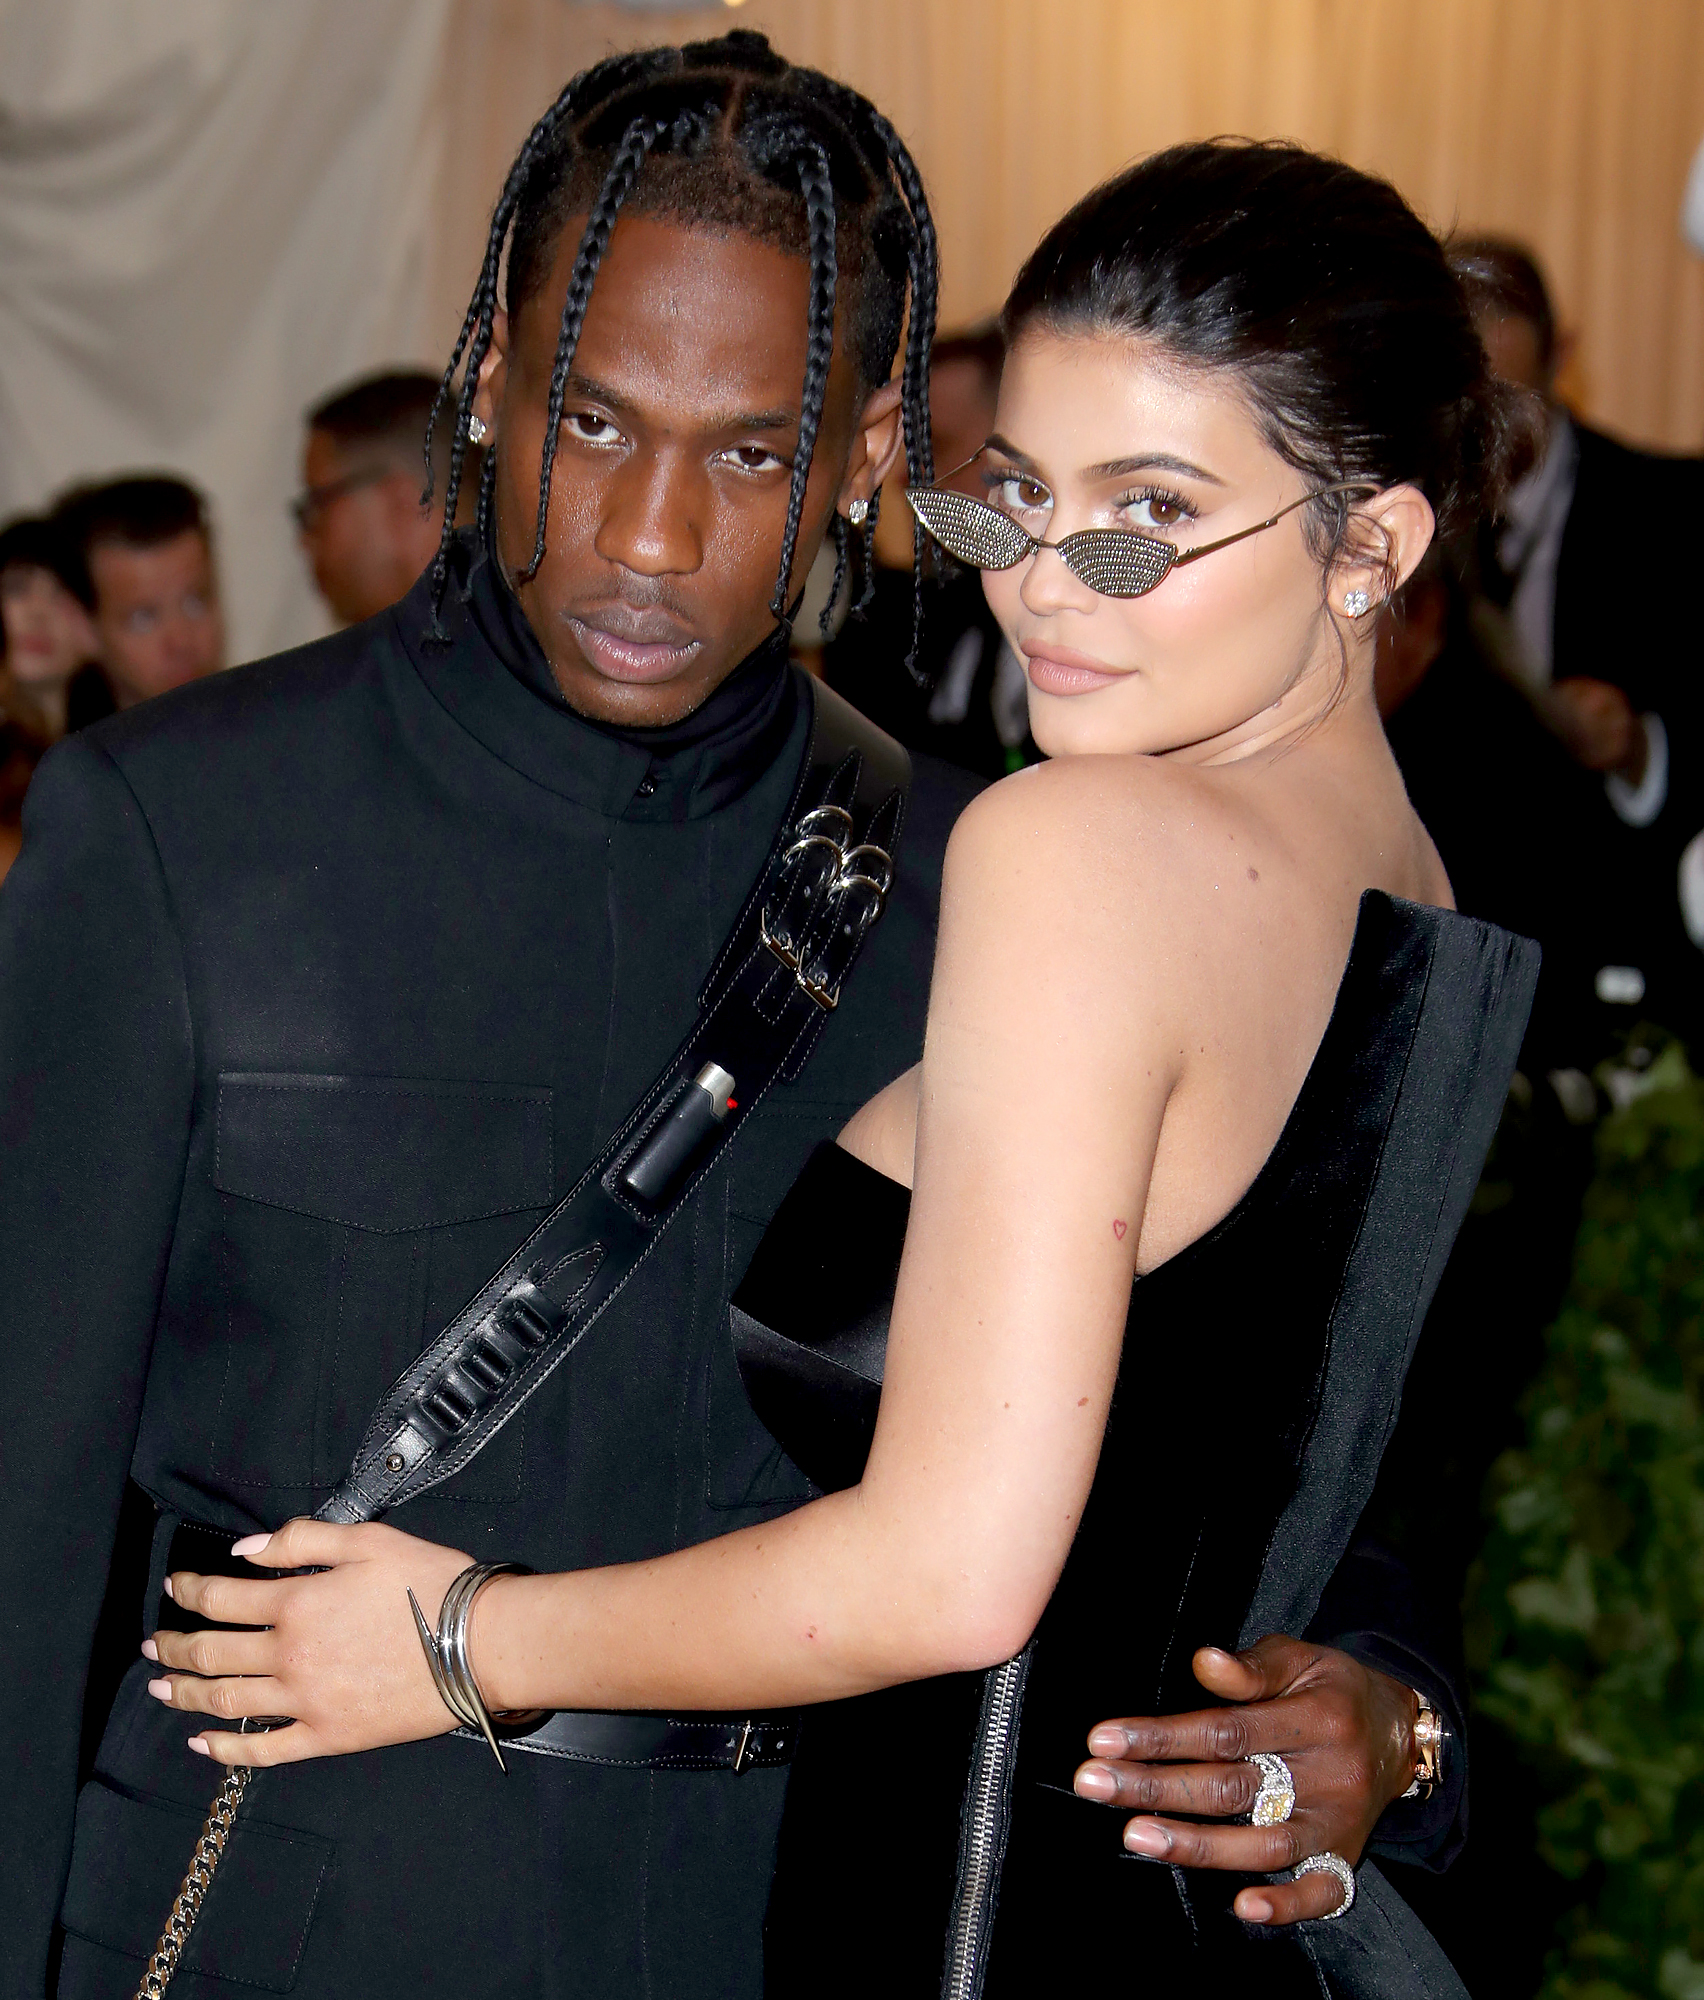 Travis-Scott-Covers-GF-Kylie-Jenner's-House-in-Rose-Petals-Ahead-of-Birthday-2